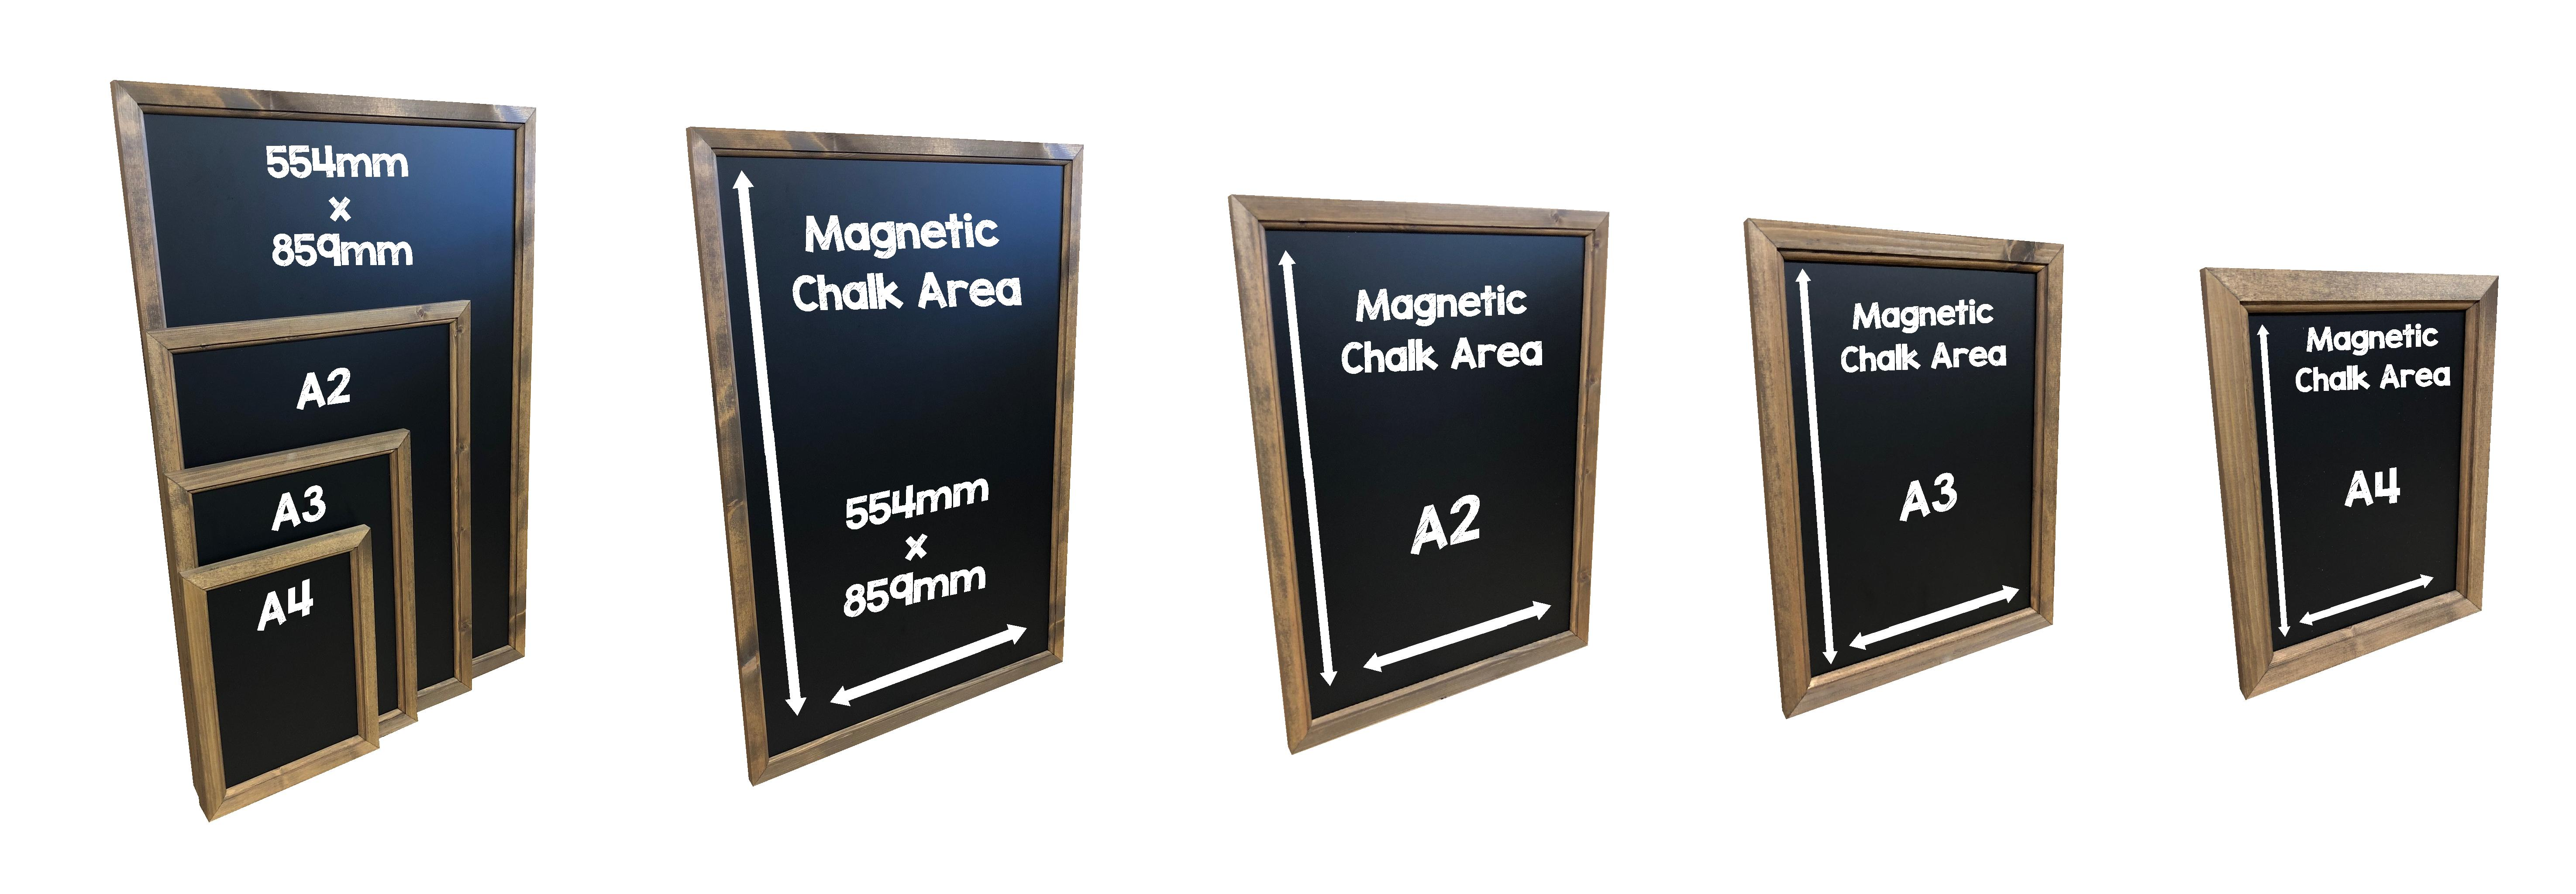 Magnetic Chalkboards Archives - Chalkboard Products